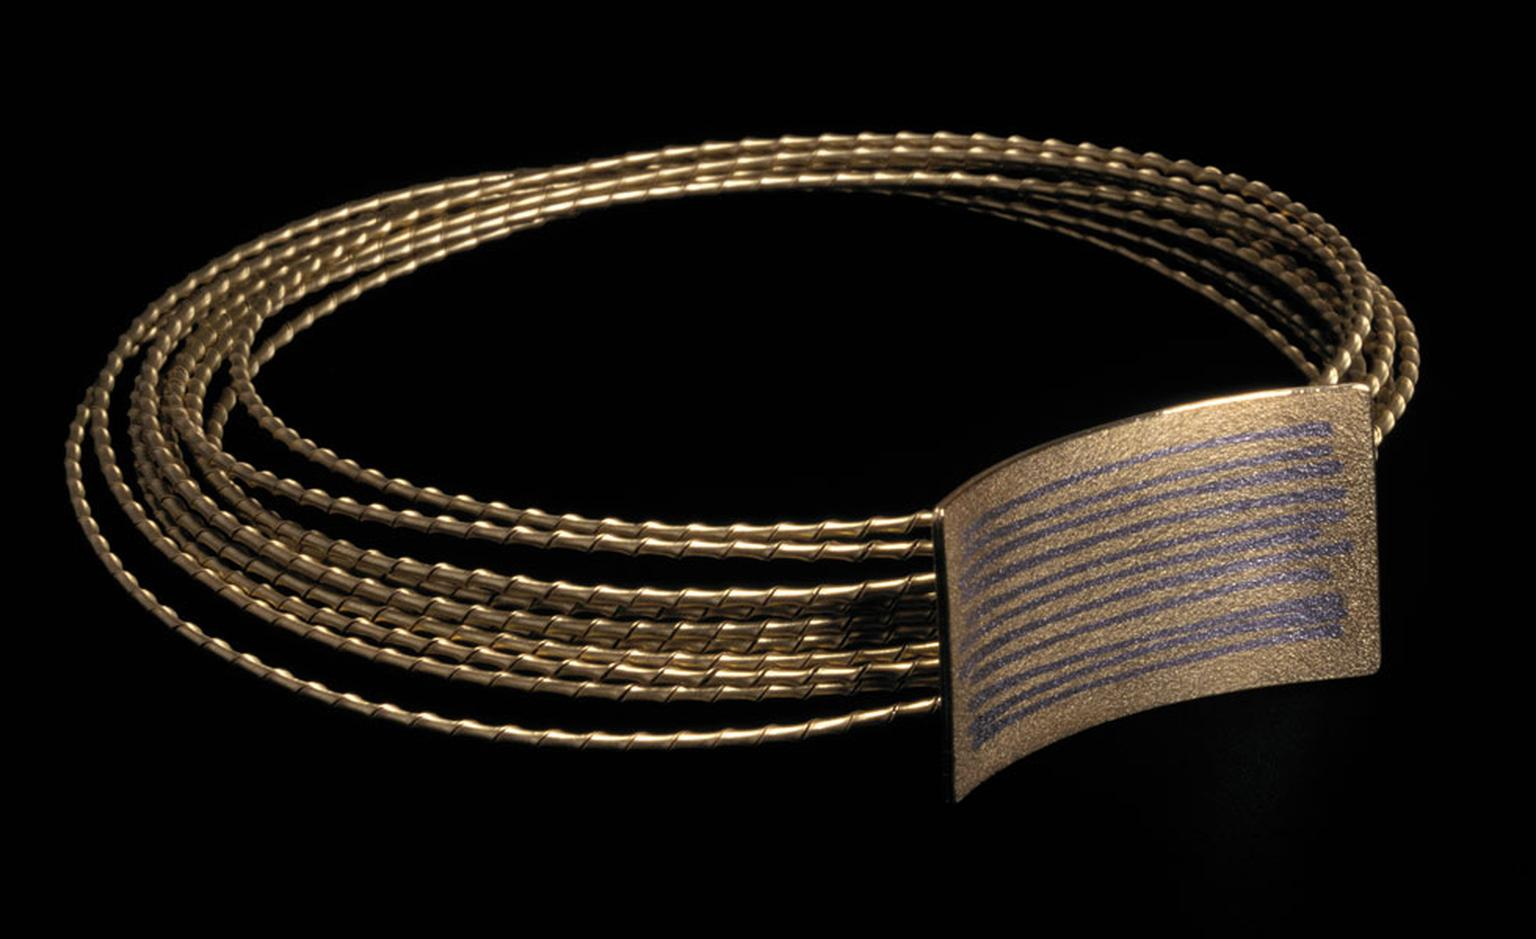 Jacqueline Mina necklace from 2004 in 18 carat gold with platinum wire fusion inlay and nine rows of 18 carat gold striptwist. Photo: Neil Mason